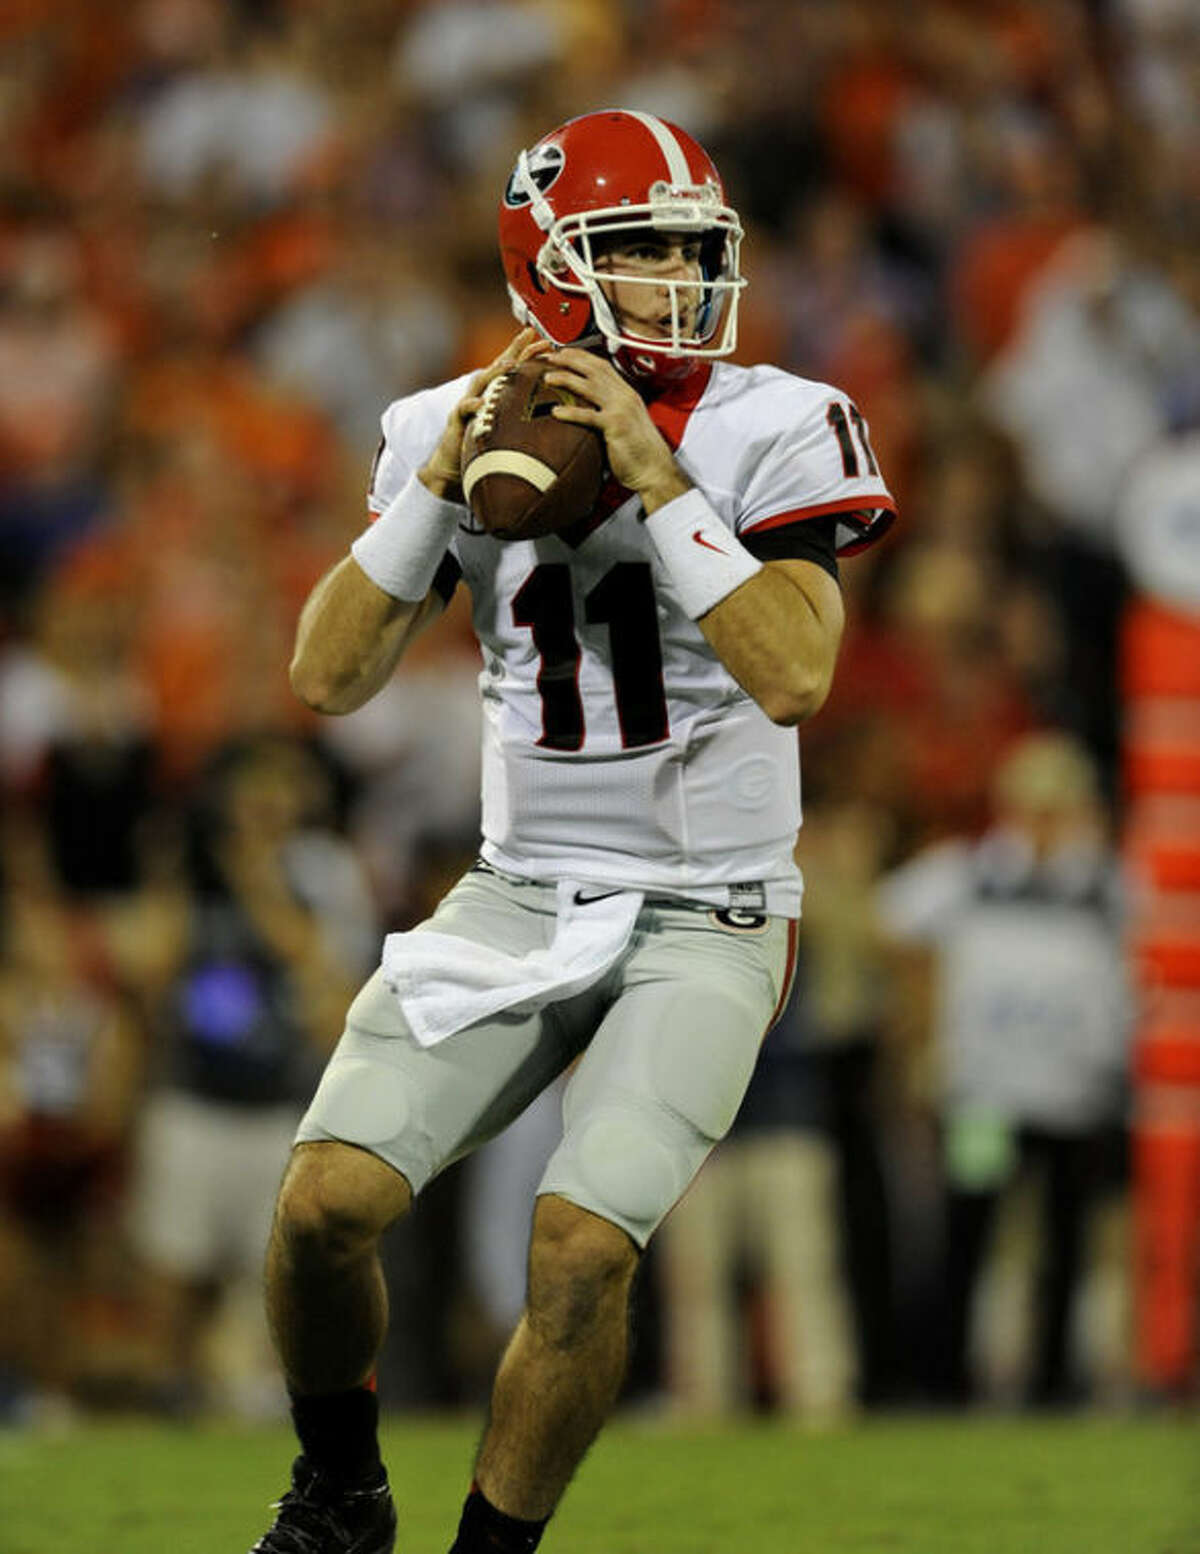 Georgia quarterback Aaron Murray drops back to pass during the first half of an NCAA college football game against Clemson at Memorial Stadium, Saturday, Aug. 31, 2013, in Clemson, S.C. (AP Photo/Richard Shiro)